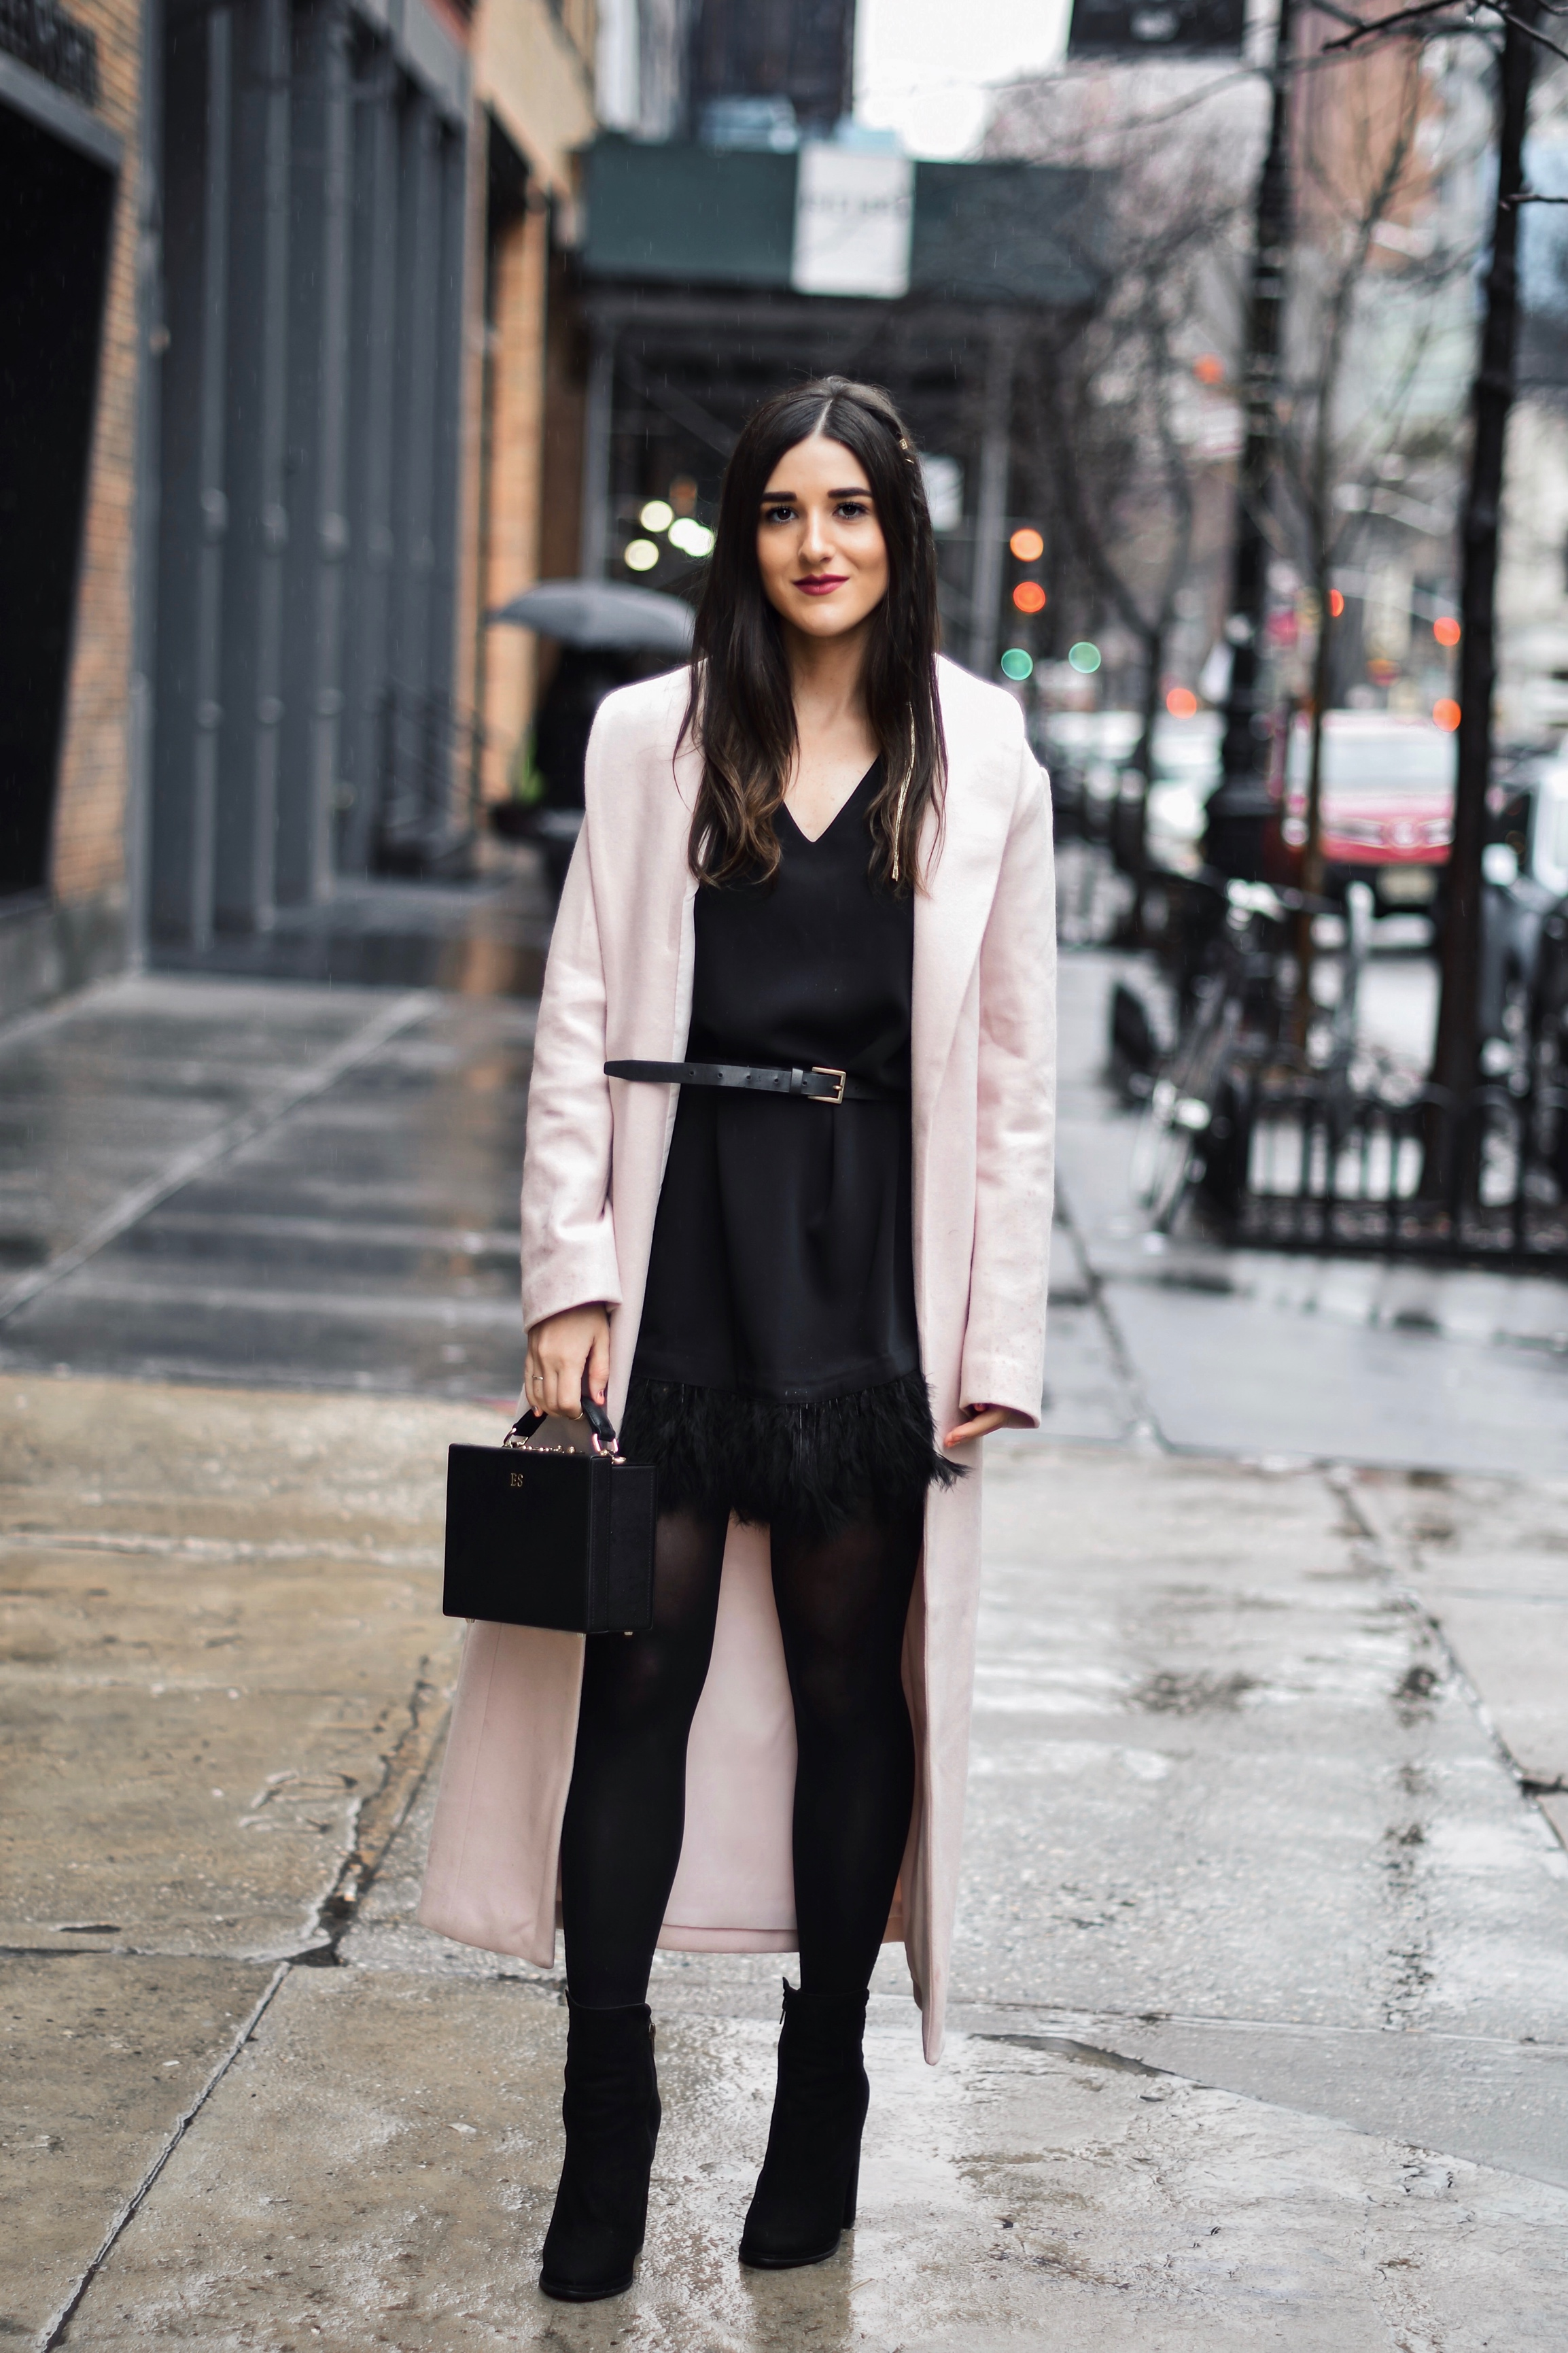 f991c1ad How To Stay Grounded // Black Feather Trim Dress + Long Pink Coat ...